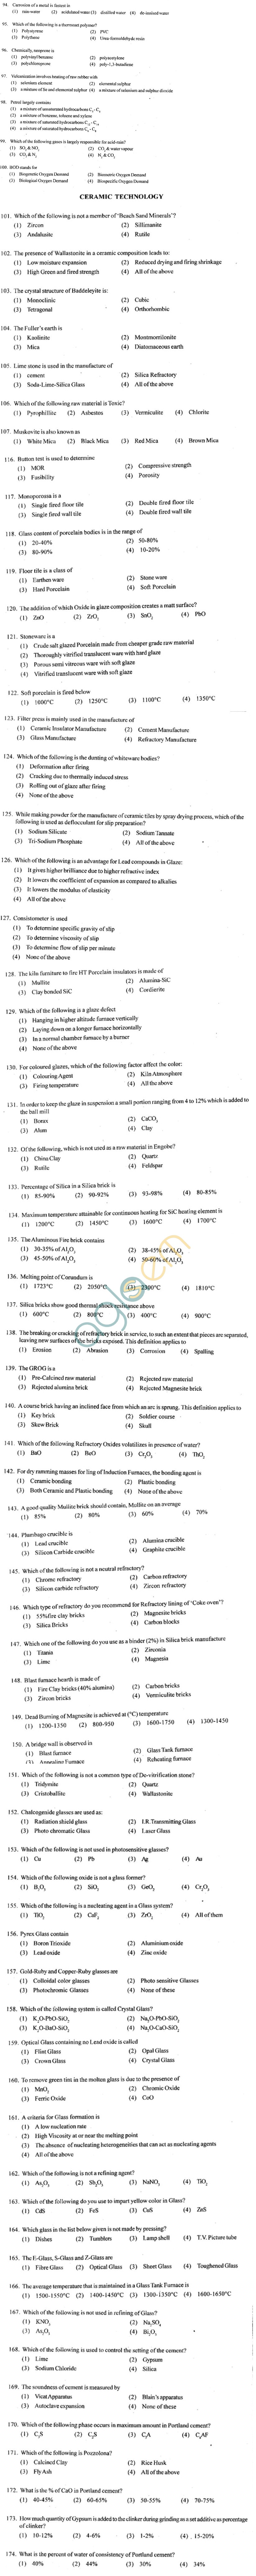 ECET 2012 Question Paper with Answers - Ceramic Technology